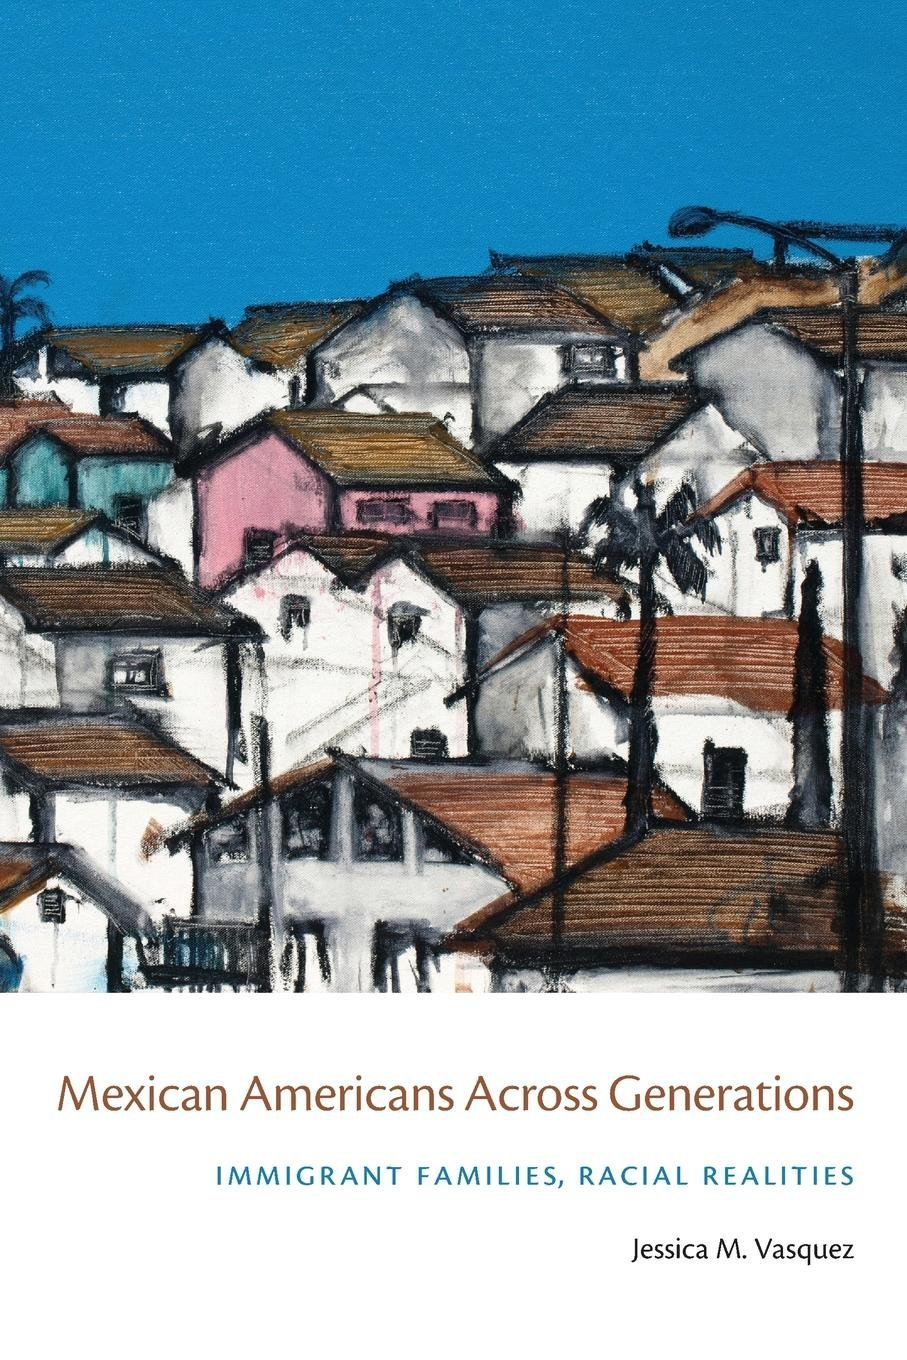 Mexican Americans Across Generations: Immigrant Families, Racial Realities PDF